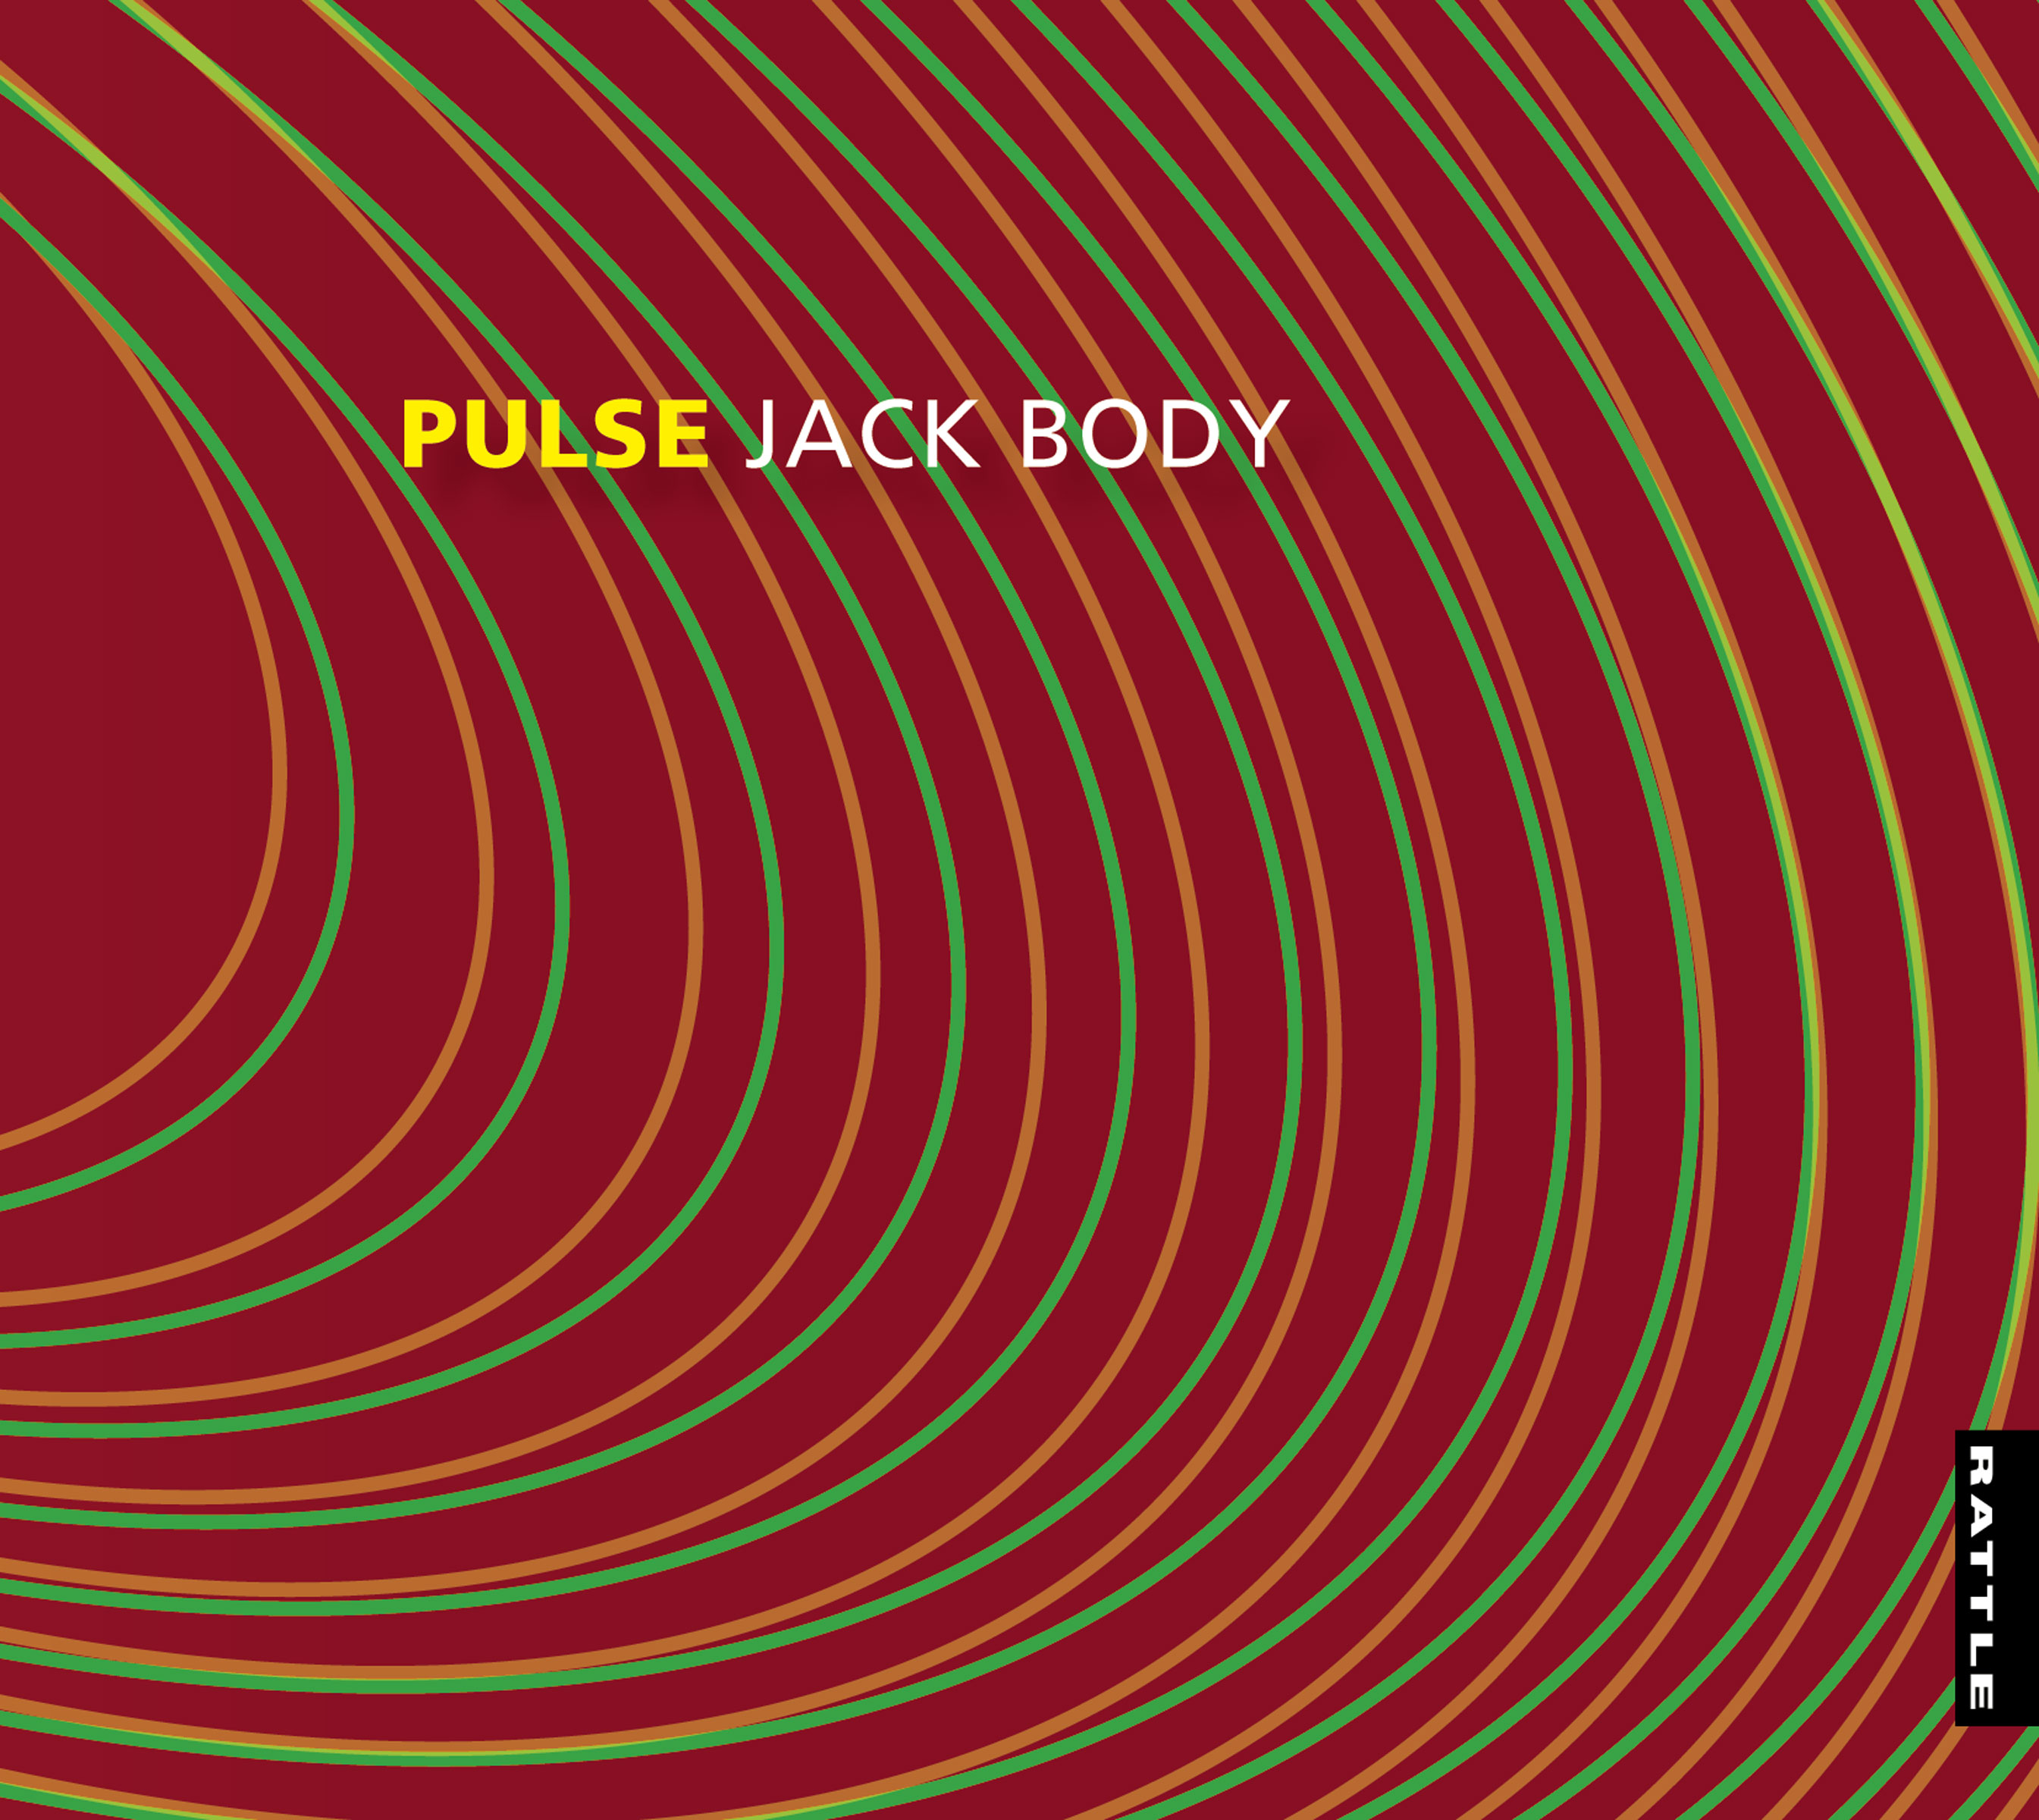 Jack Body | Pulse - CD